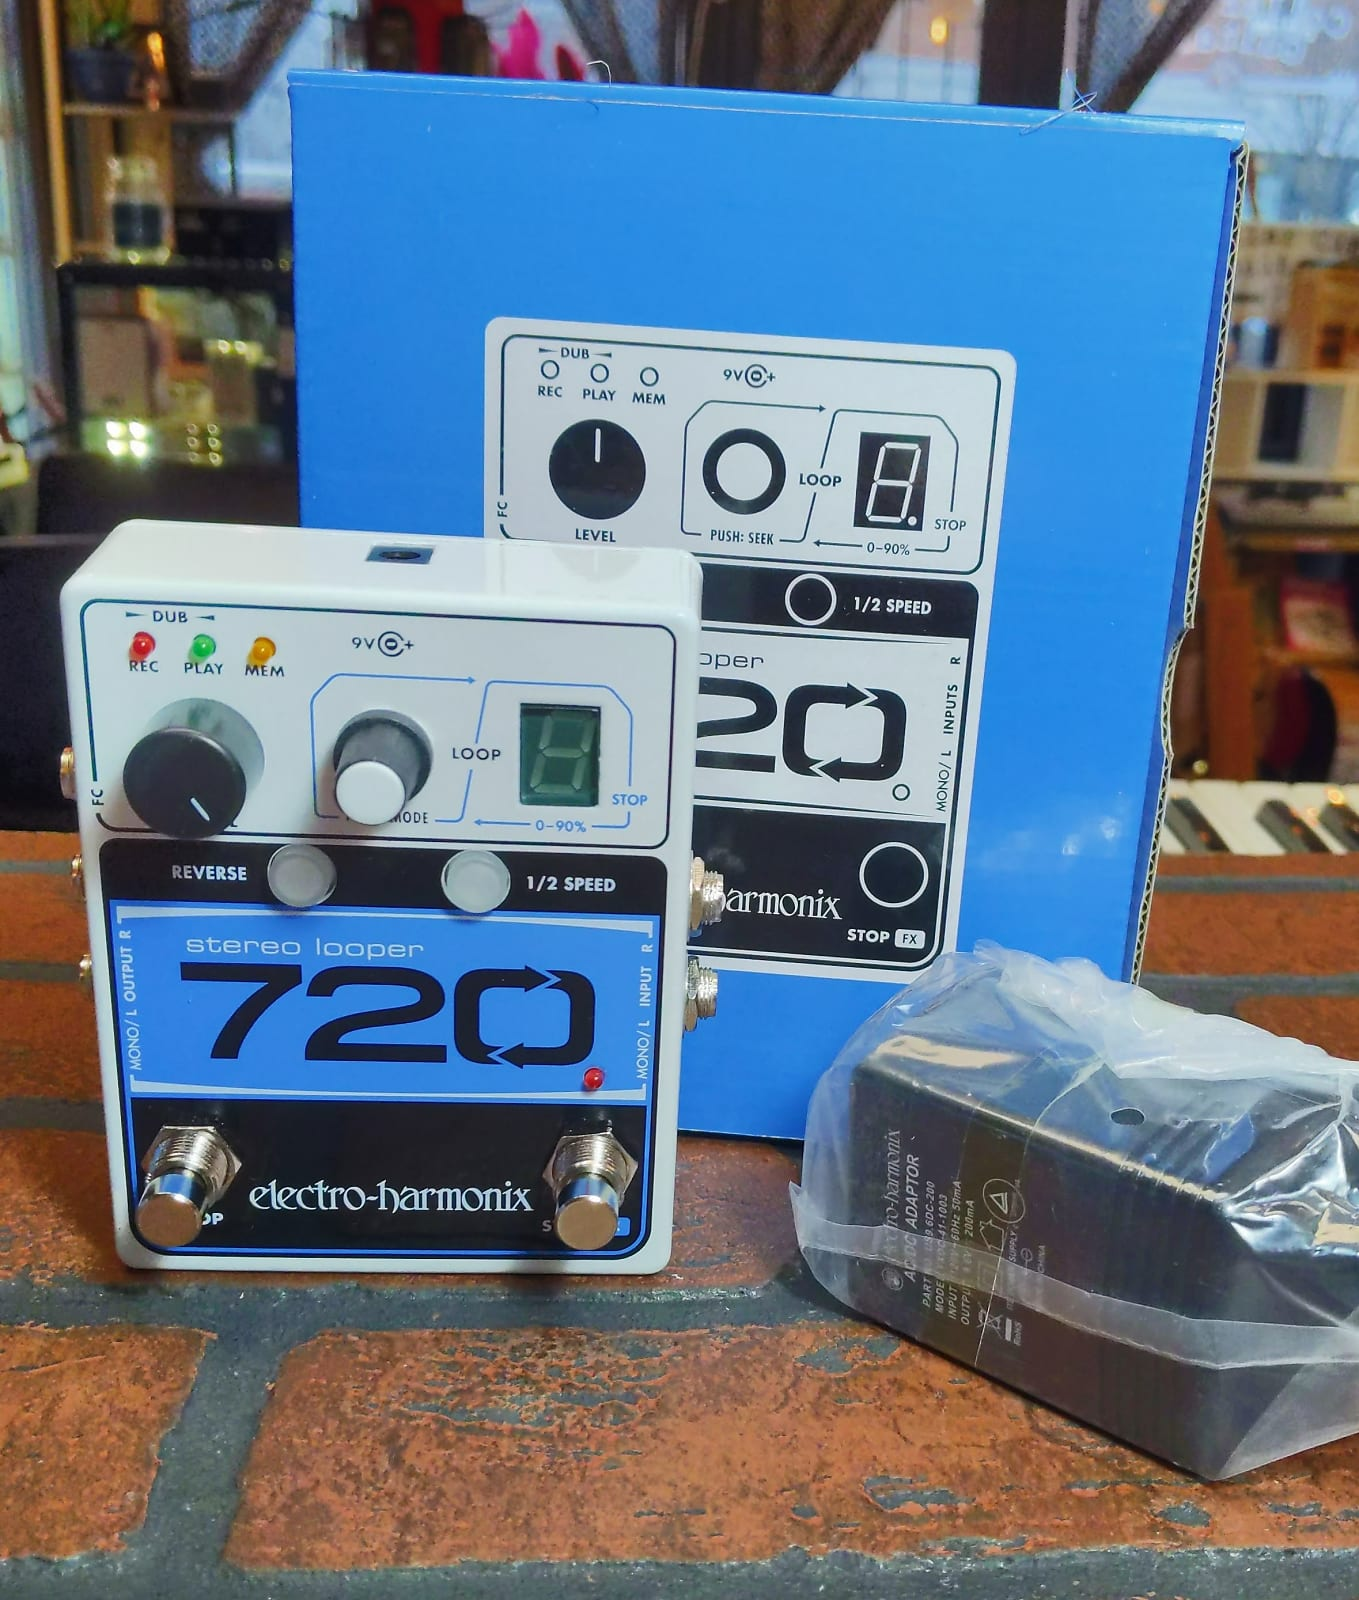 1//2 Speed Electro-Harmonix EHX Stereo Looper 720 Guitar Effect Pedal Reverse